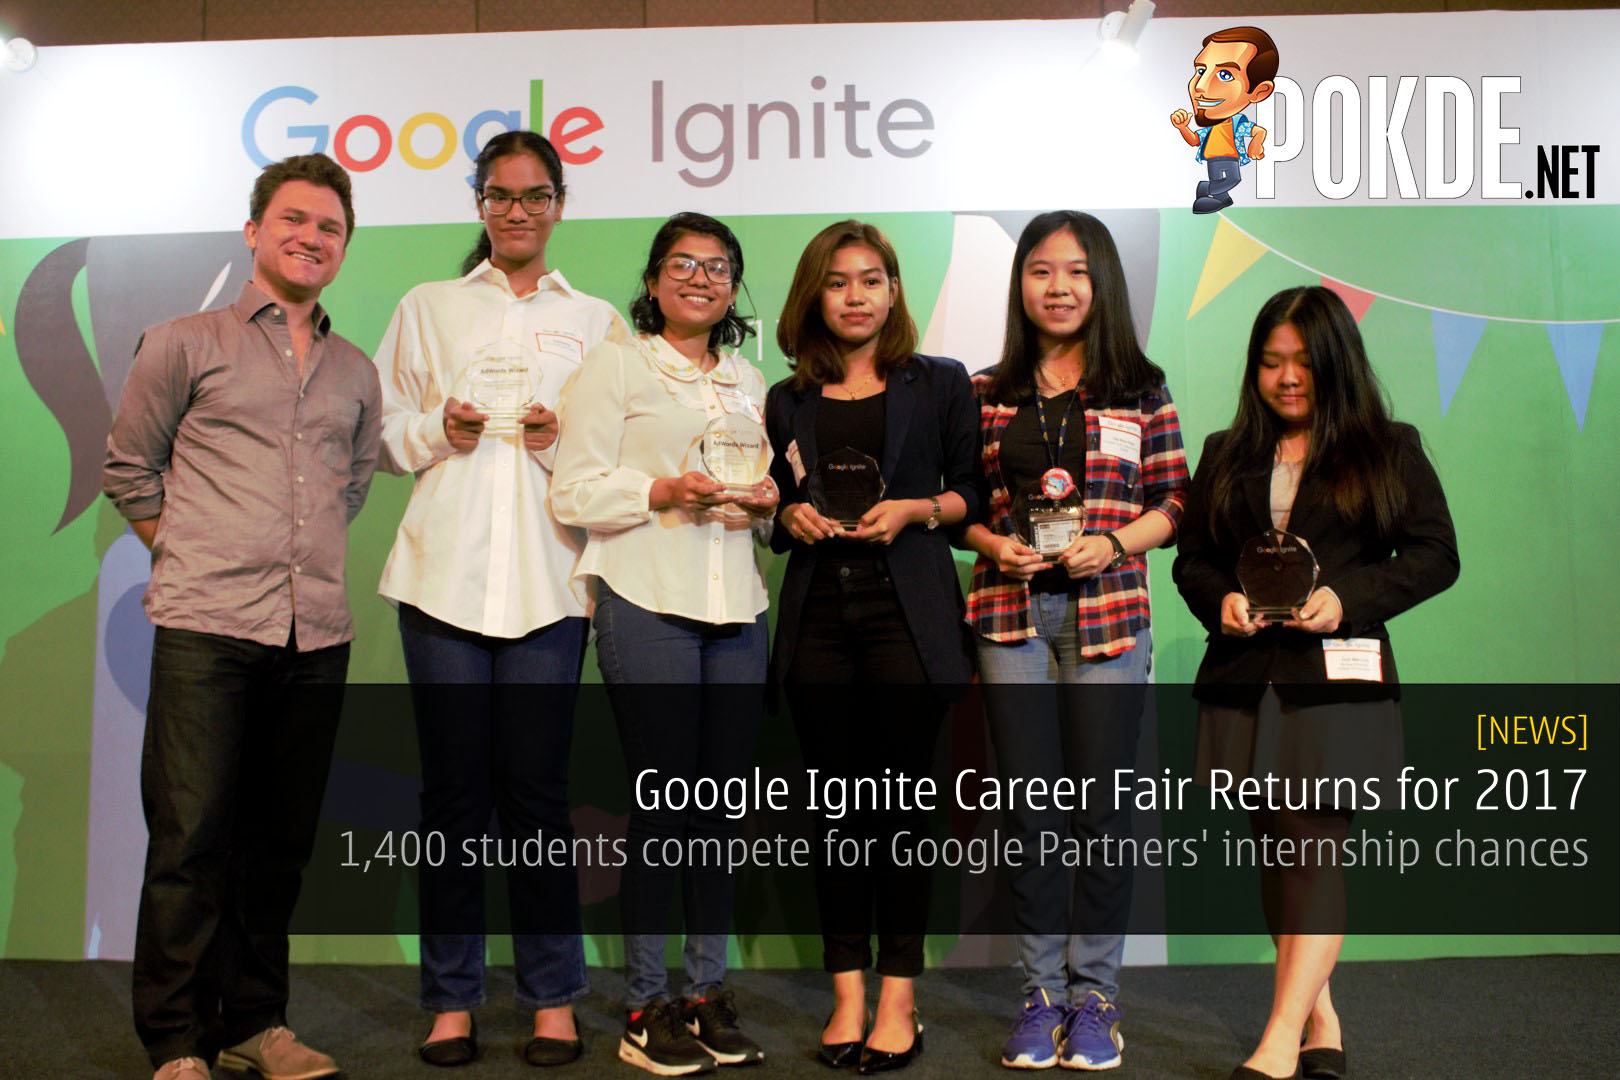 Google Ignite Career Fair Returns for 2017 - 1,400 students compete for Google Partners' internship opportunities 26